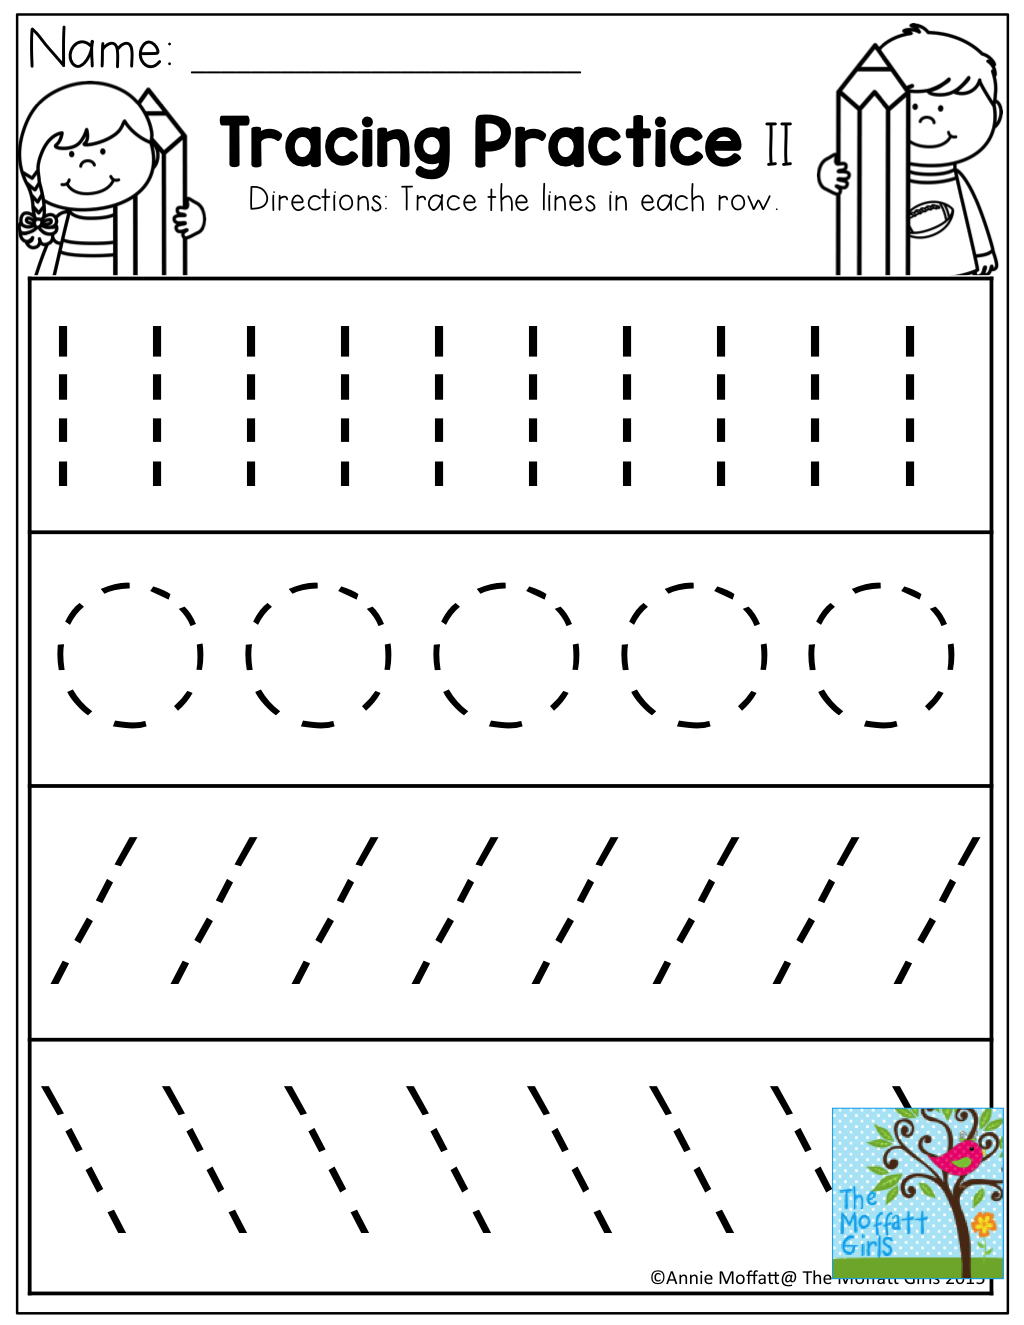 photograph regarding Tracing Lines Worksheets Printable referred to as Tracing Teach! Heaps of printable for Pre-K, Kindergarten